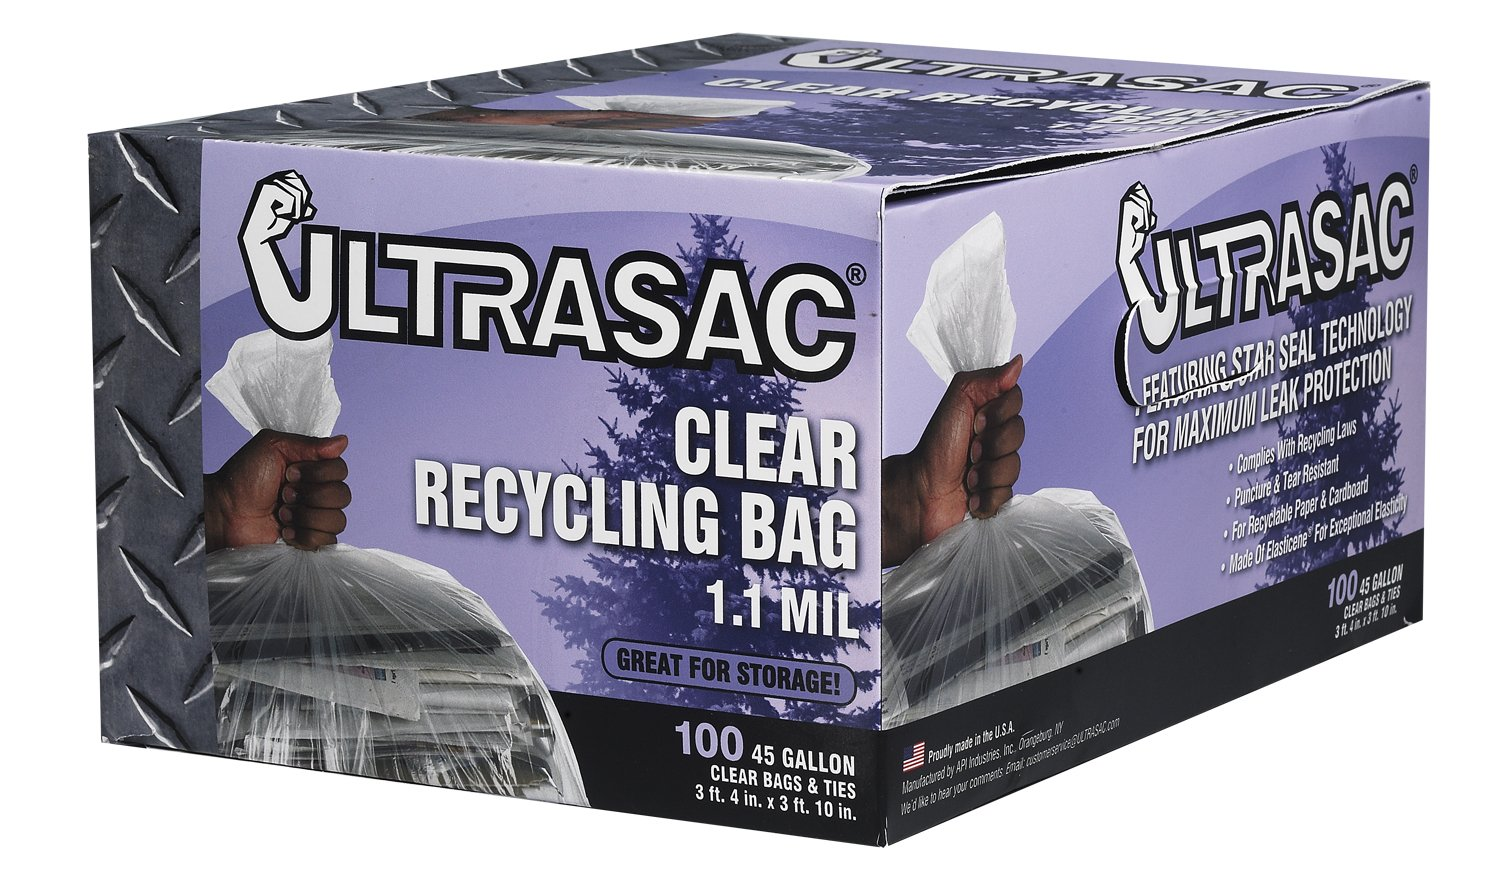 Clear Recycling Bags by Ultrasac - Heavy Duty 45 Gallon Garbage Bags (HUGE 100 Pack w/ties) - 46' x 40' - Industrial Quality Clear Trash Bags for Paper, Plastic, Cans, Bottles, Newspaper, Grass, Lawn